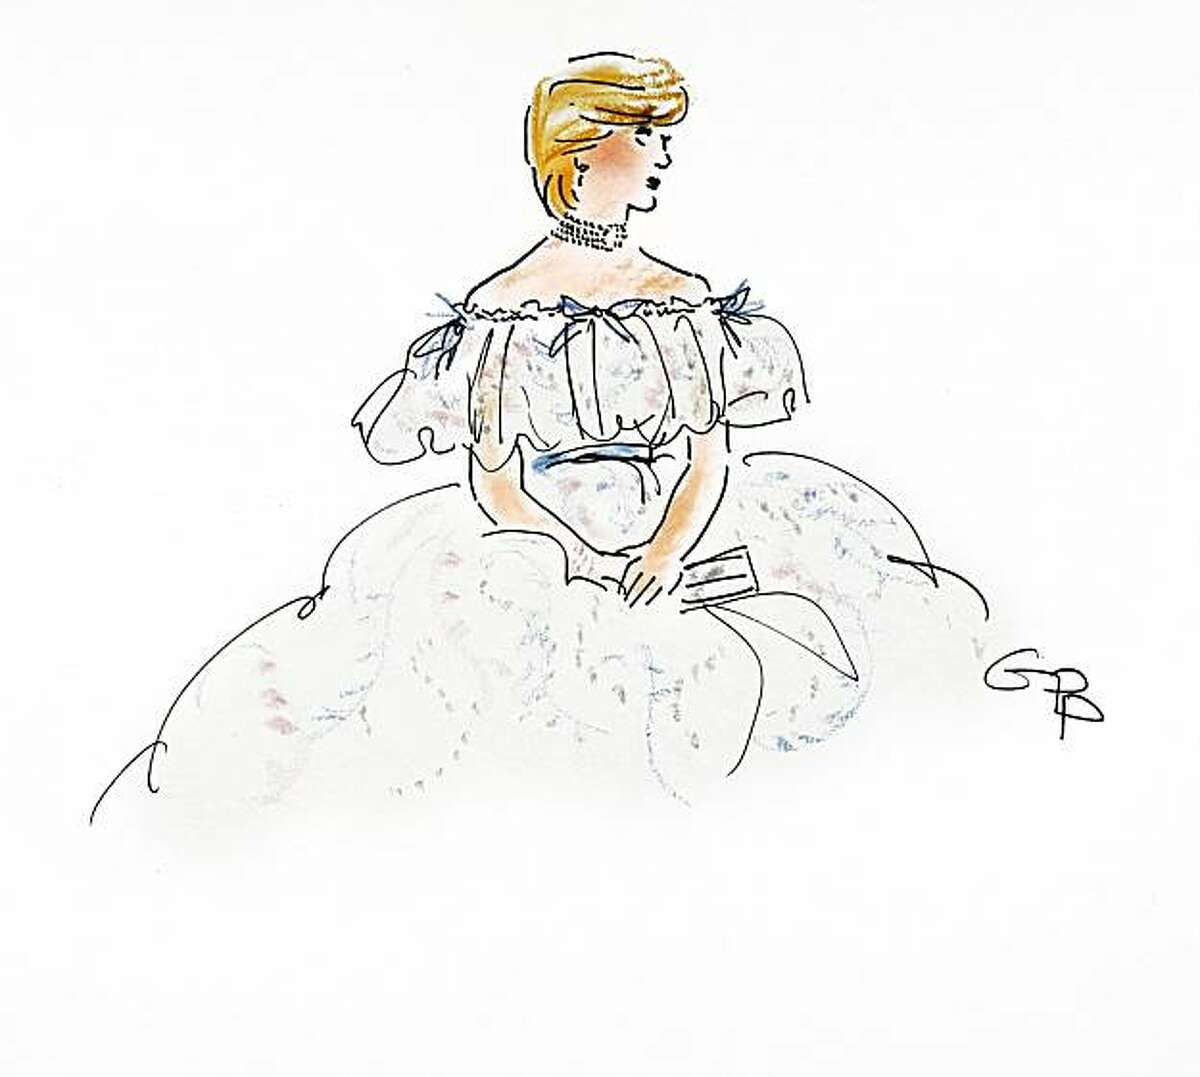 The late Princess Diana, as imagined by fashion illustrator Gladys Perint Palmer, in an illustration done for Princess Diana drawn for The New Yorker, September 1997, days after her death. The dress Perint Palmer drew her in is by Zandra Rhodes. Palmer, who is the executive director of the Academy of Art University's school of fashion, was selected to create promotional images for Mercedes-Benz Fashion Week in February 2011.